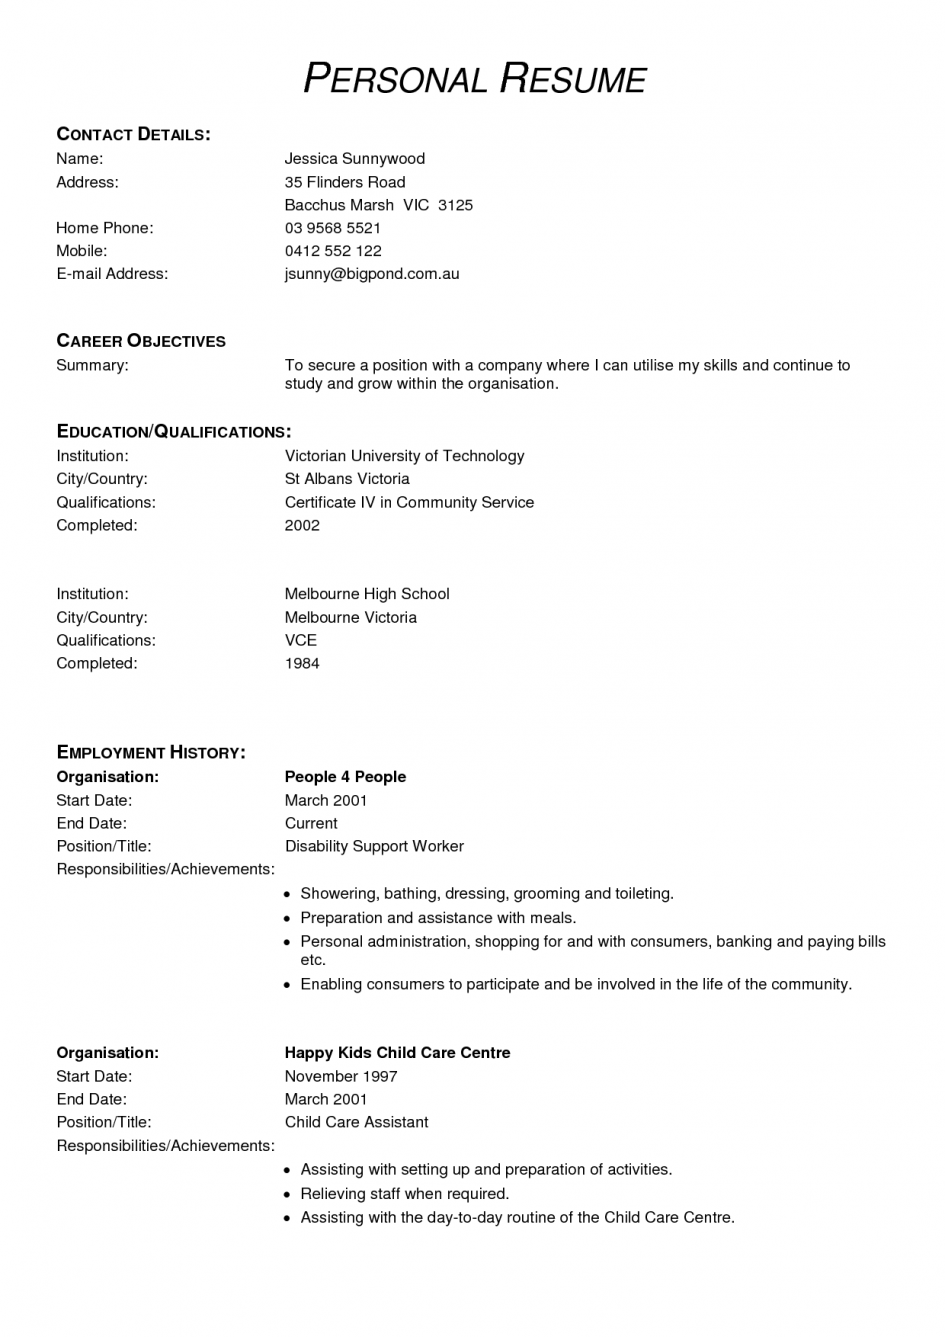 health care assistant cv with no experiencepng 9451337